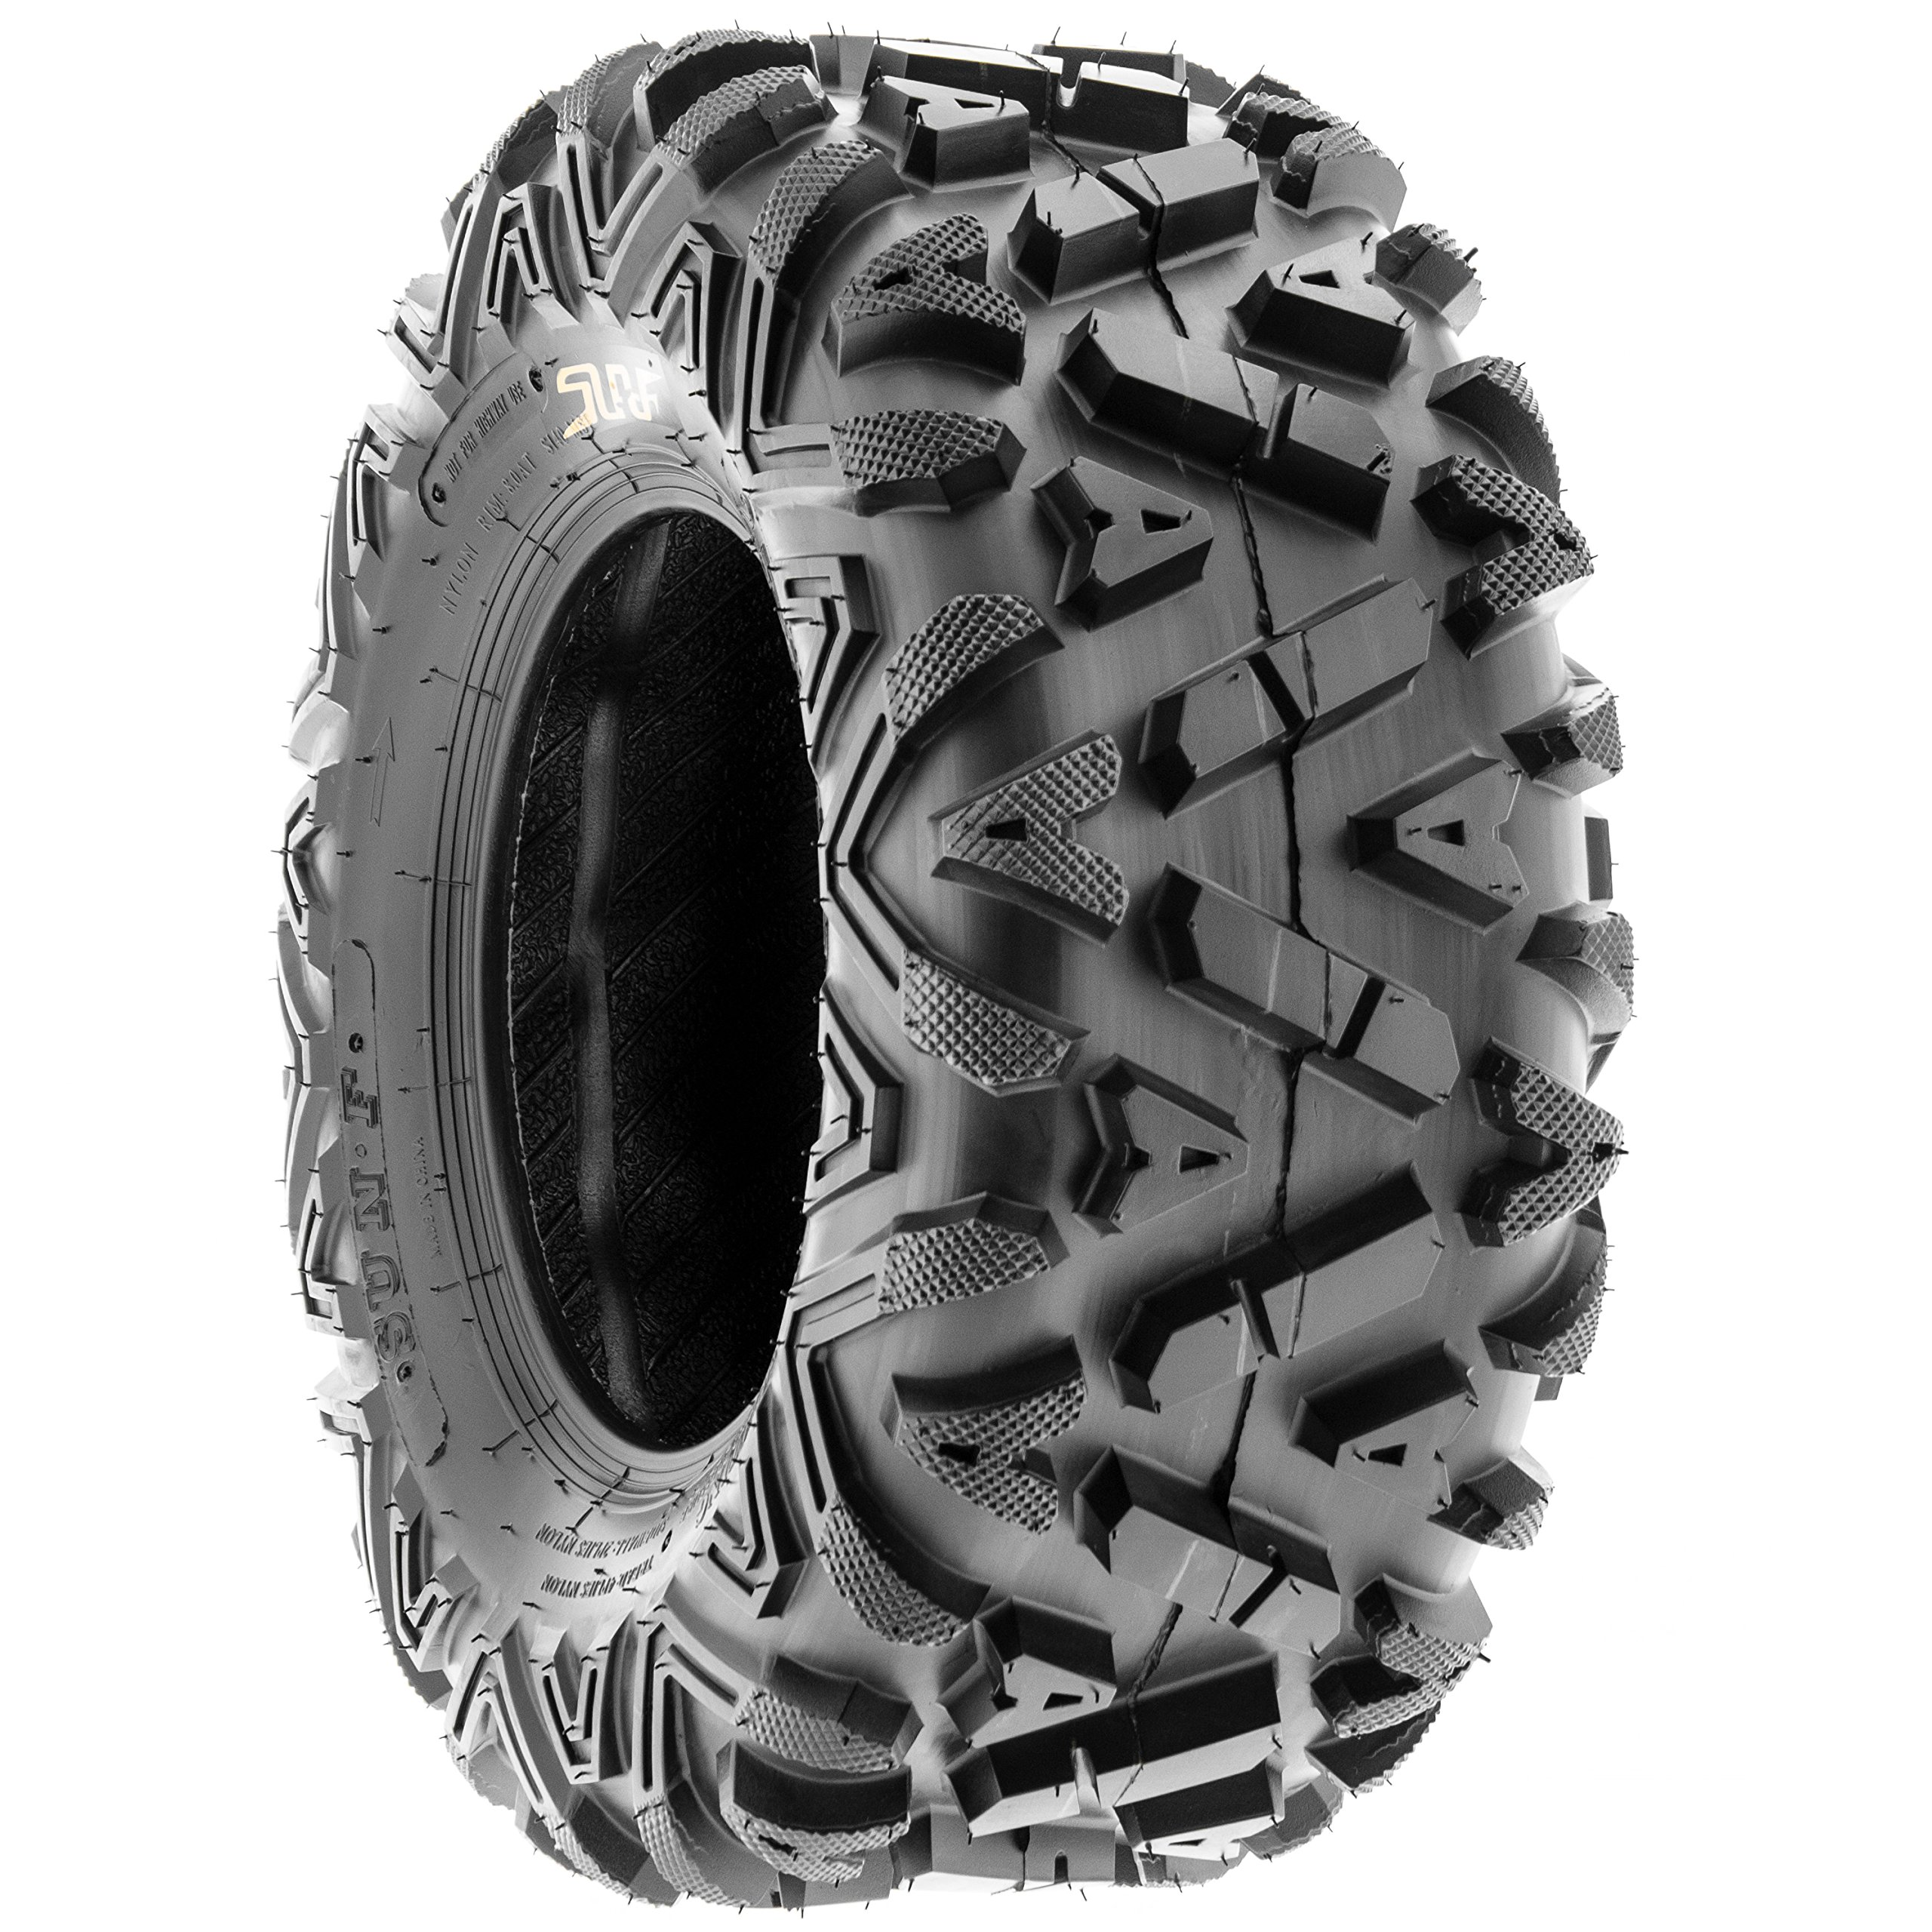 Pair of 2 SunF A033 Power.I AT 25x10-11 ATV UTV Off-Road Tires, All-Terrain, 6 PR, Tubeless by SUNF (Image #5)